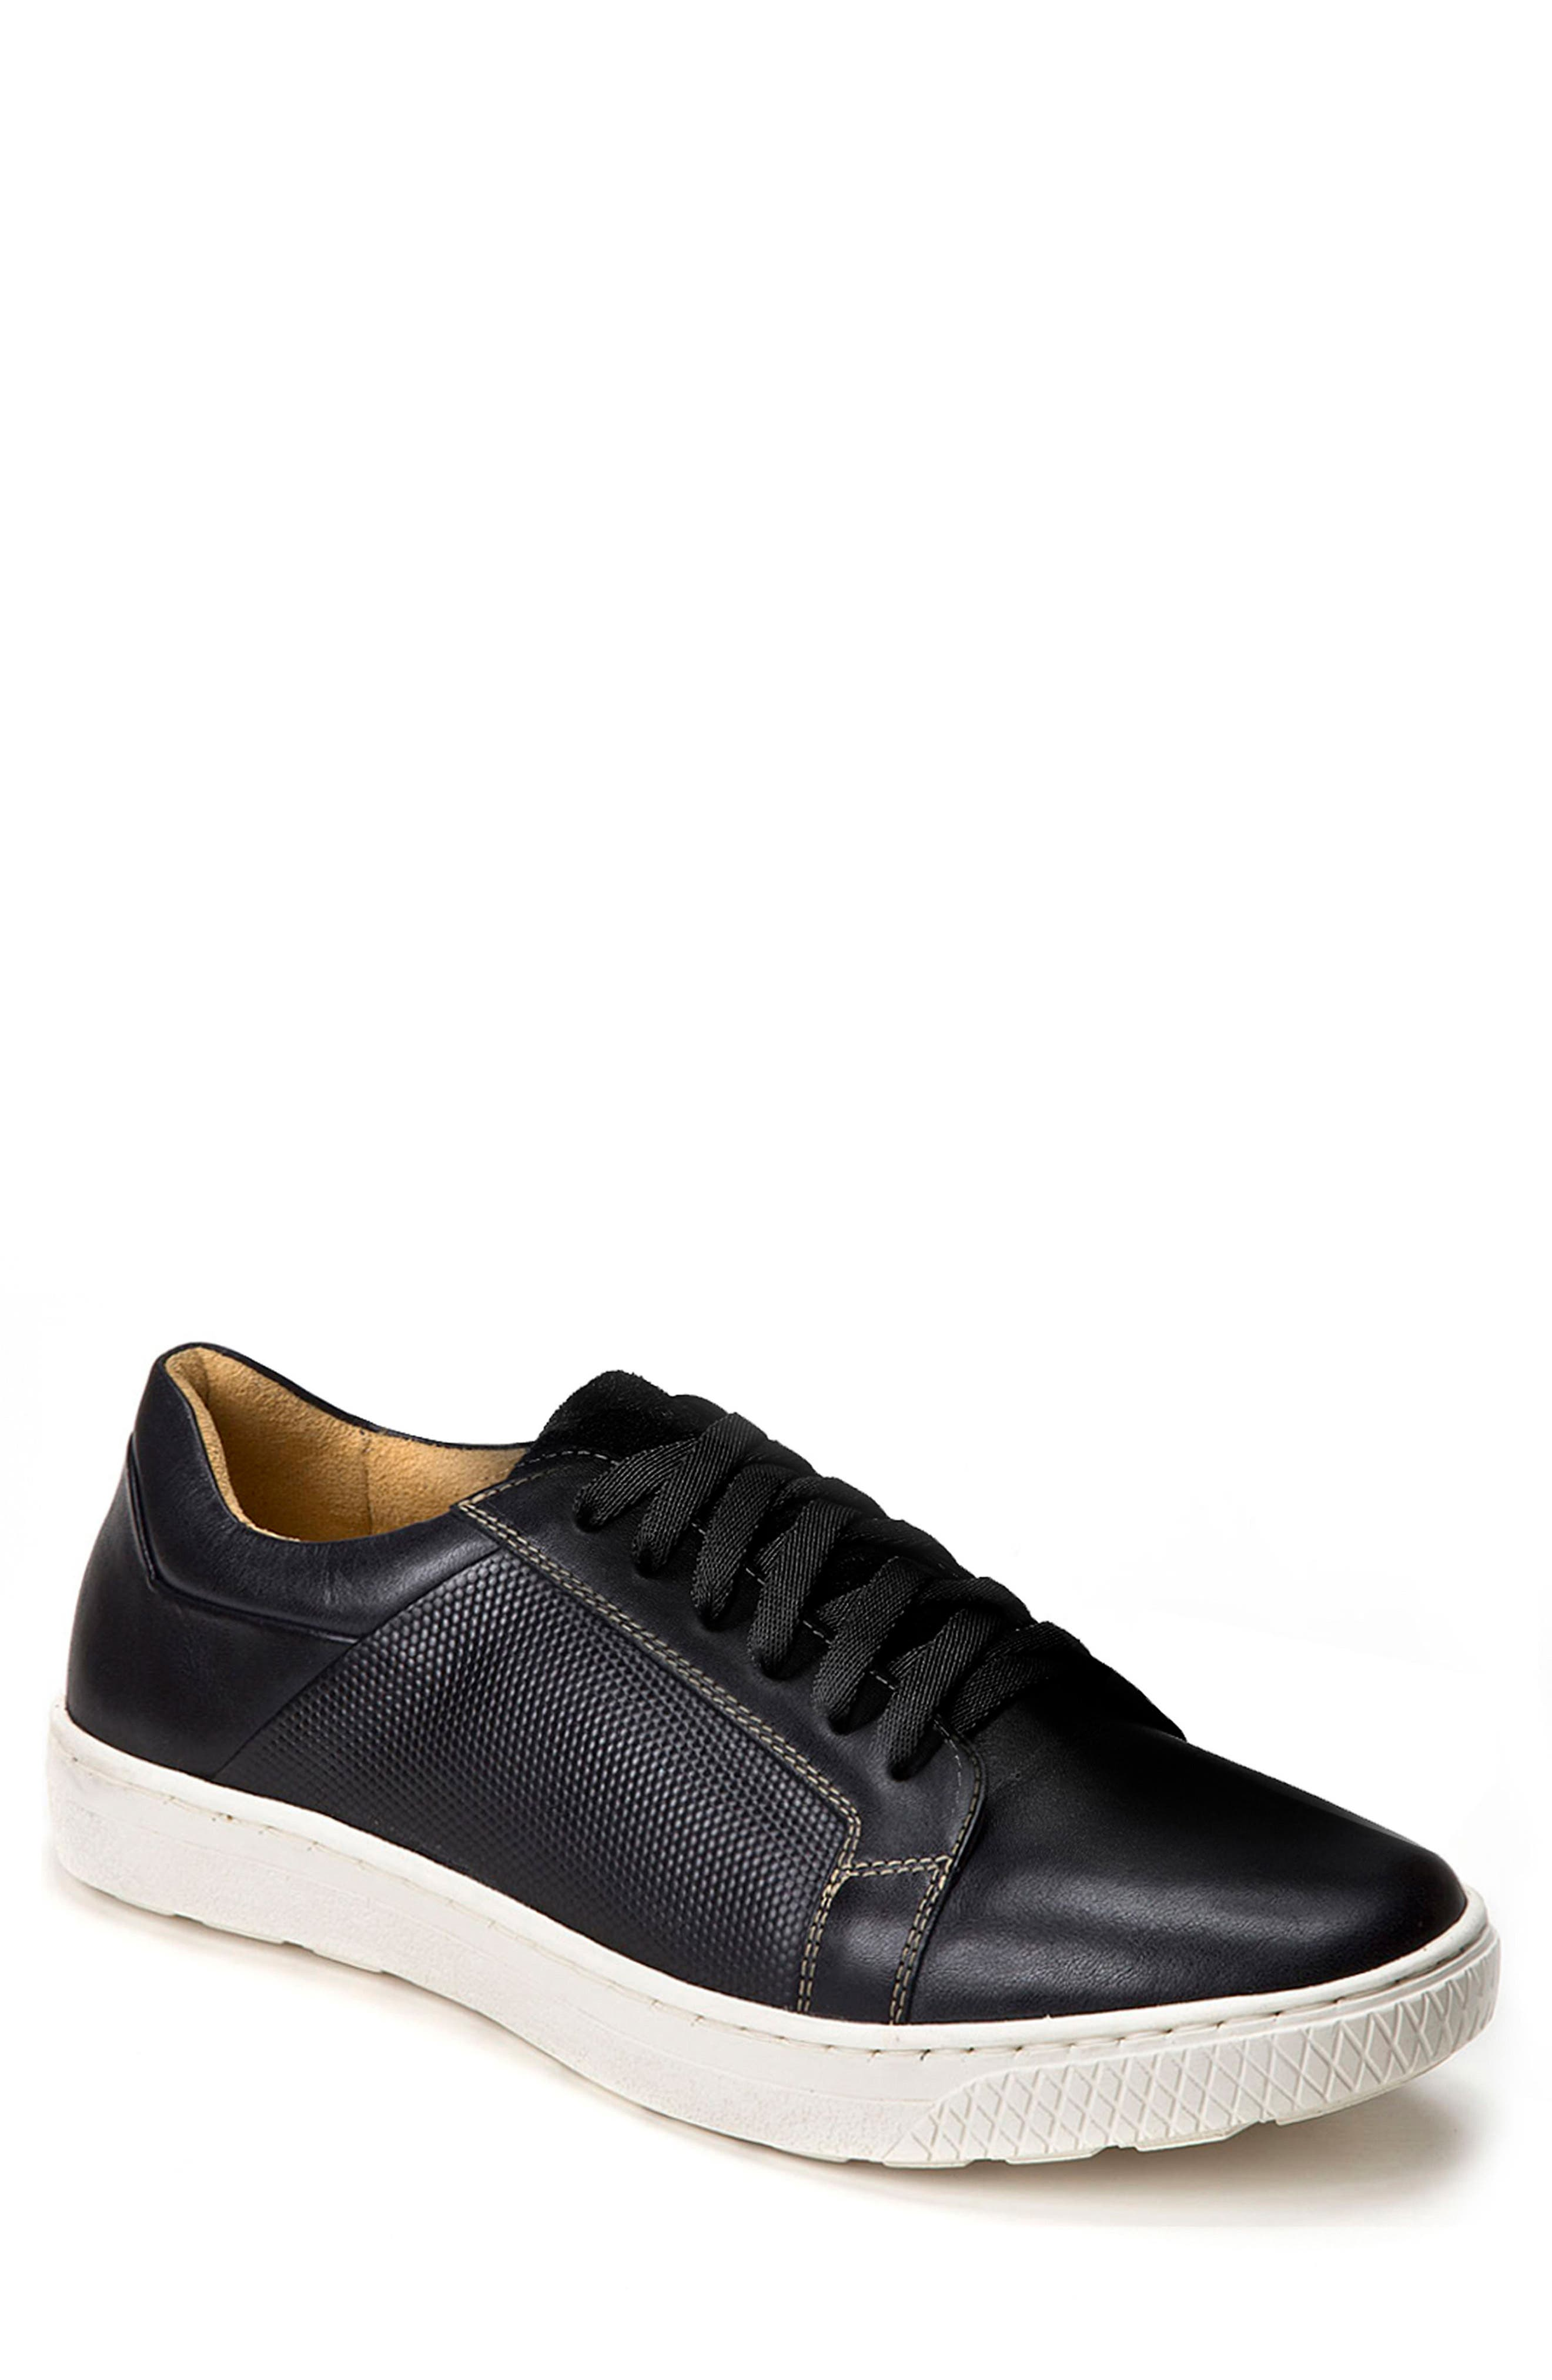 Nico Textured Sneaker,                             Main thumbnail 1, color,                             Black Leather